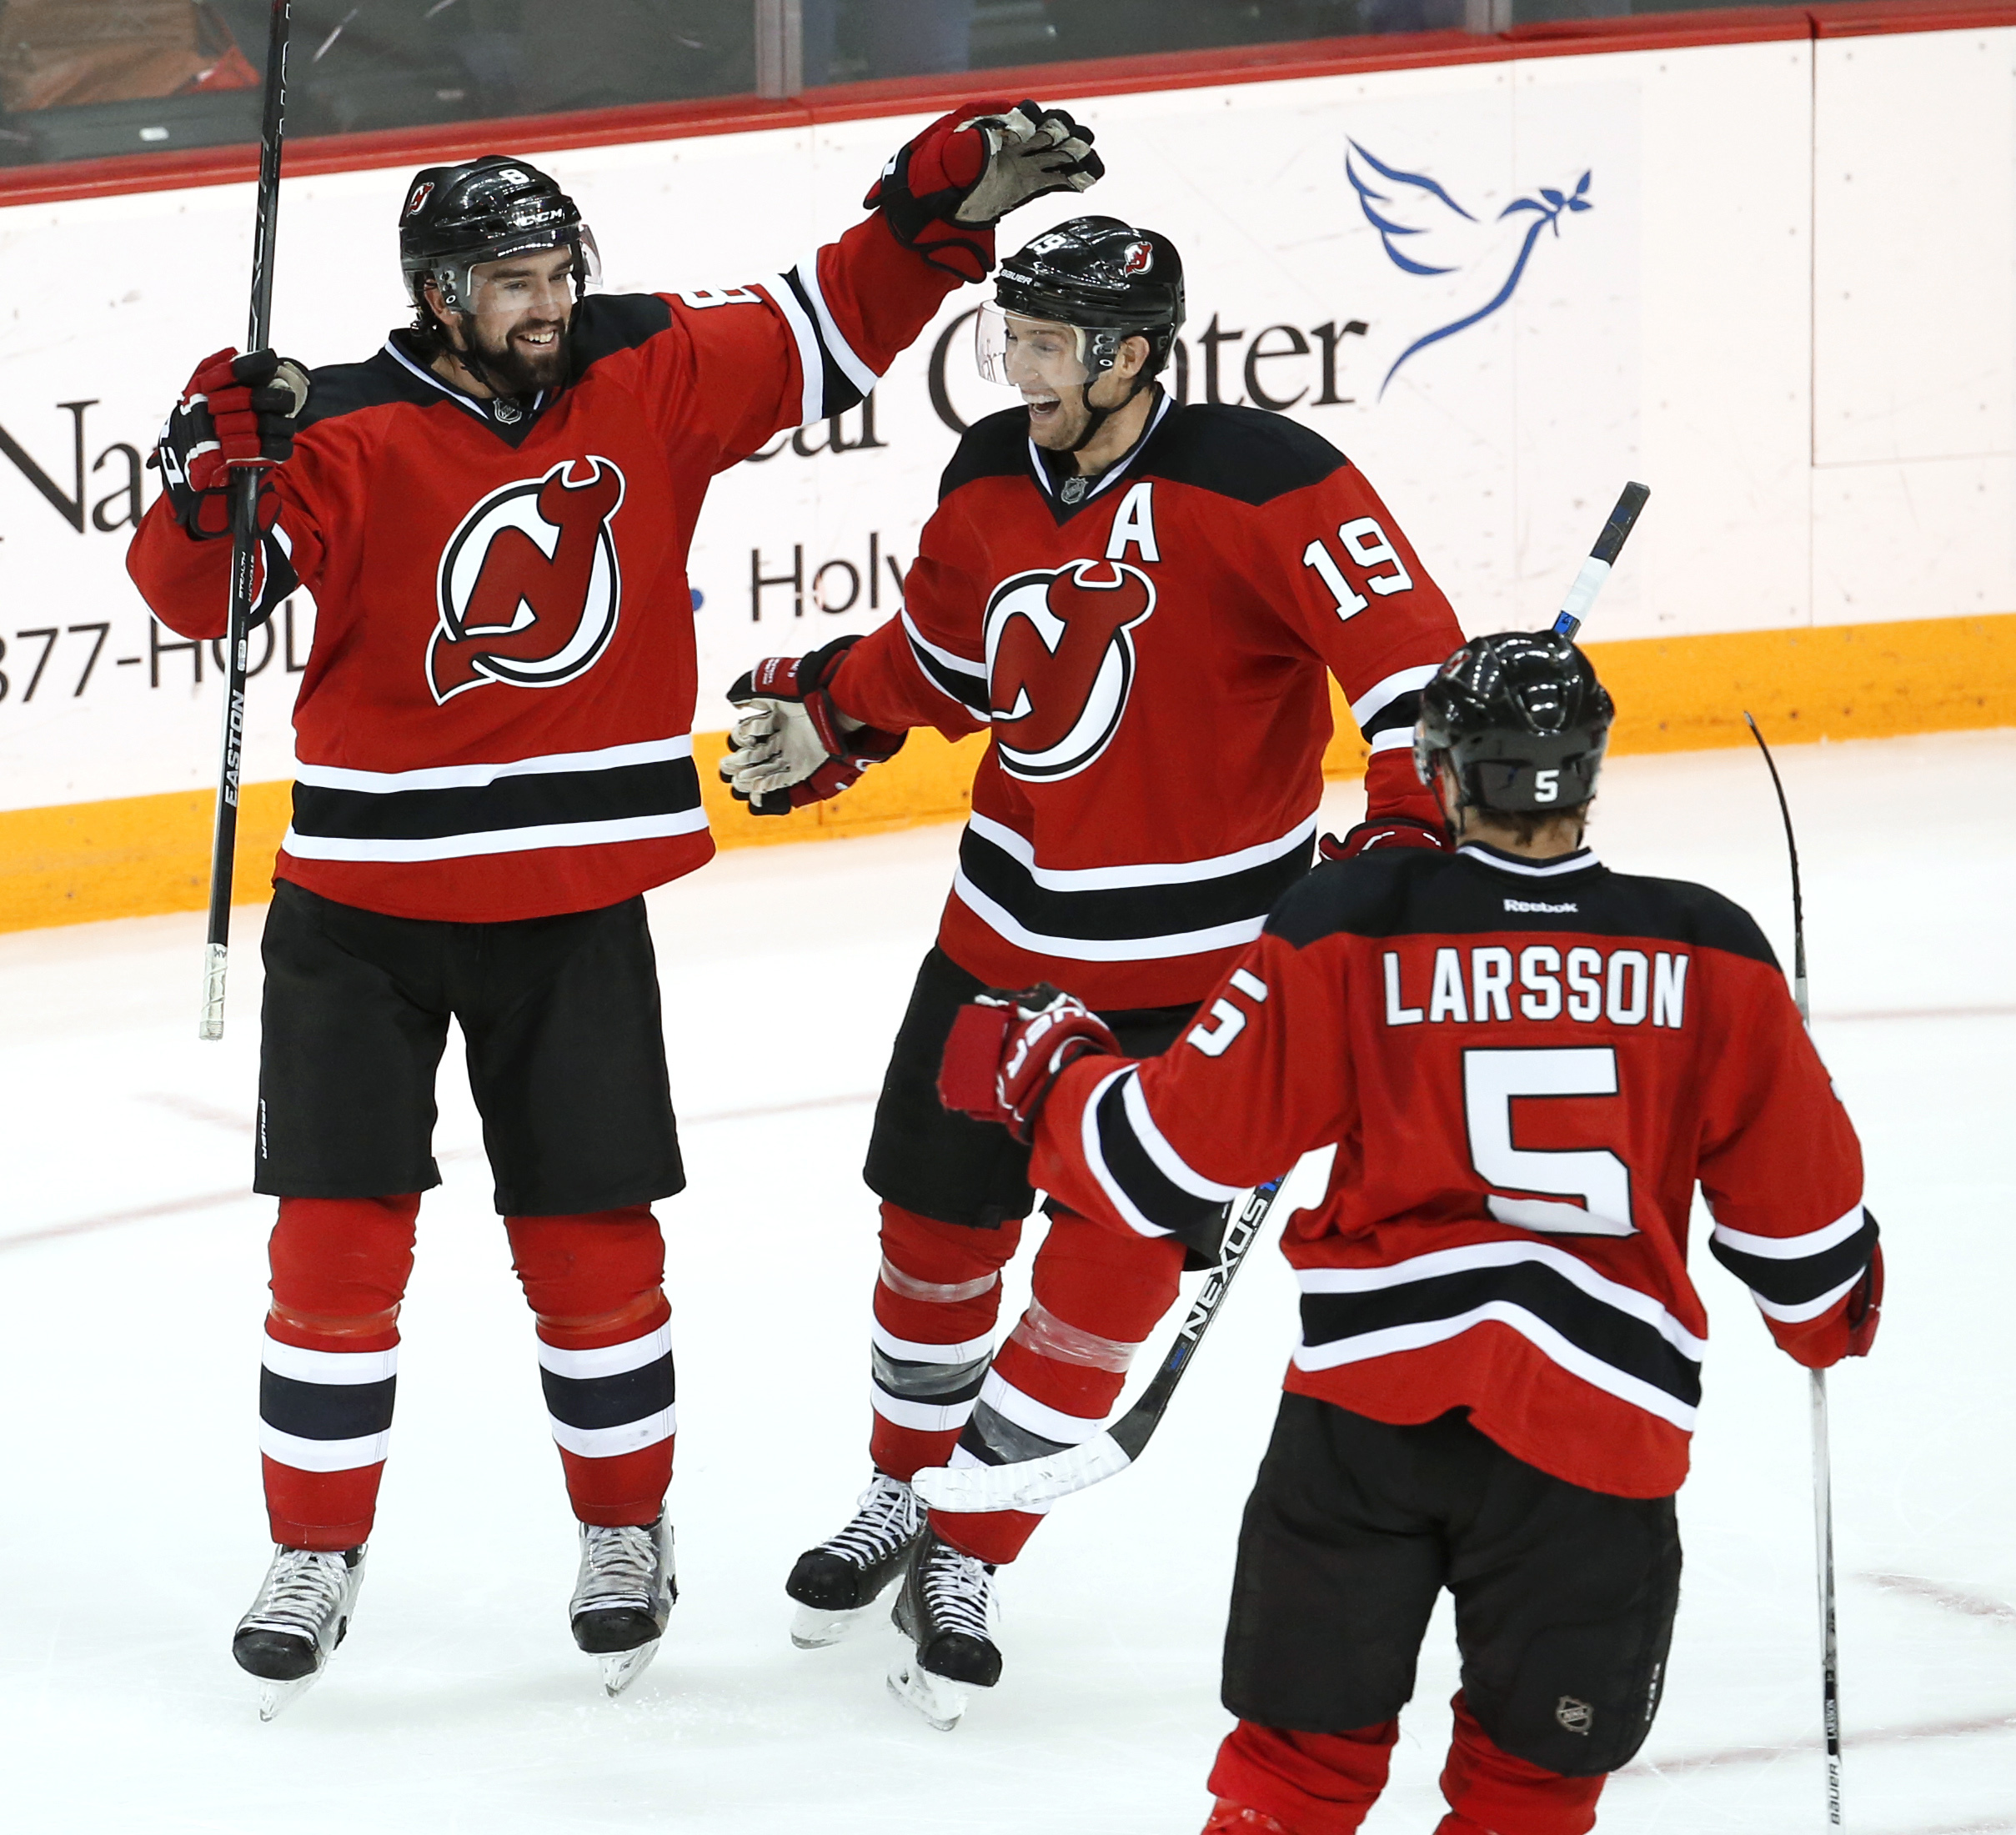 New Jersey Devils' David Schlemko, left, Travis Zajac, center, and Adam Larsson, of Sweden, celebrate Schlemko's goal against the Carolina Hurricanes during the third period of an NHL hockey game, Tuesday, Dec. 29, 2015, in Newark, N.J. The Devils won 3-2